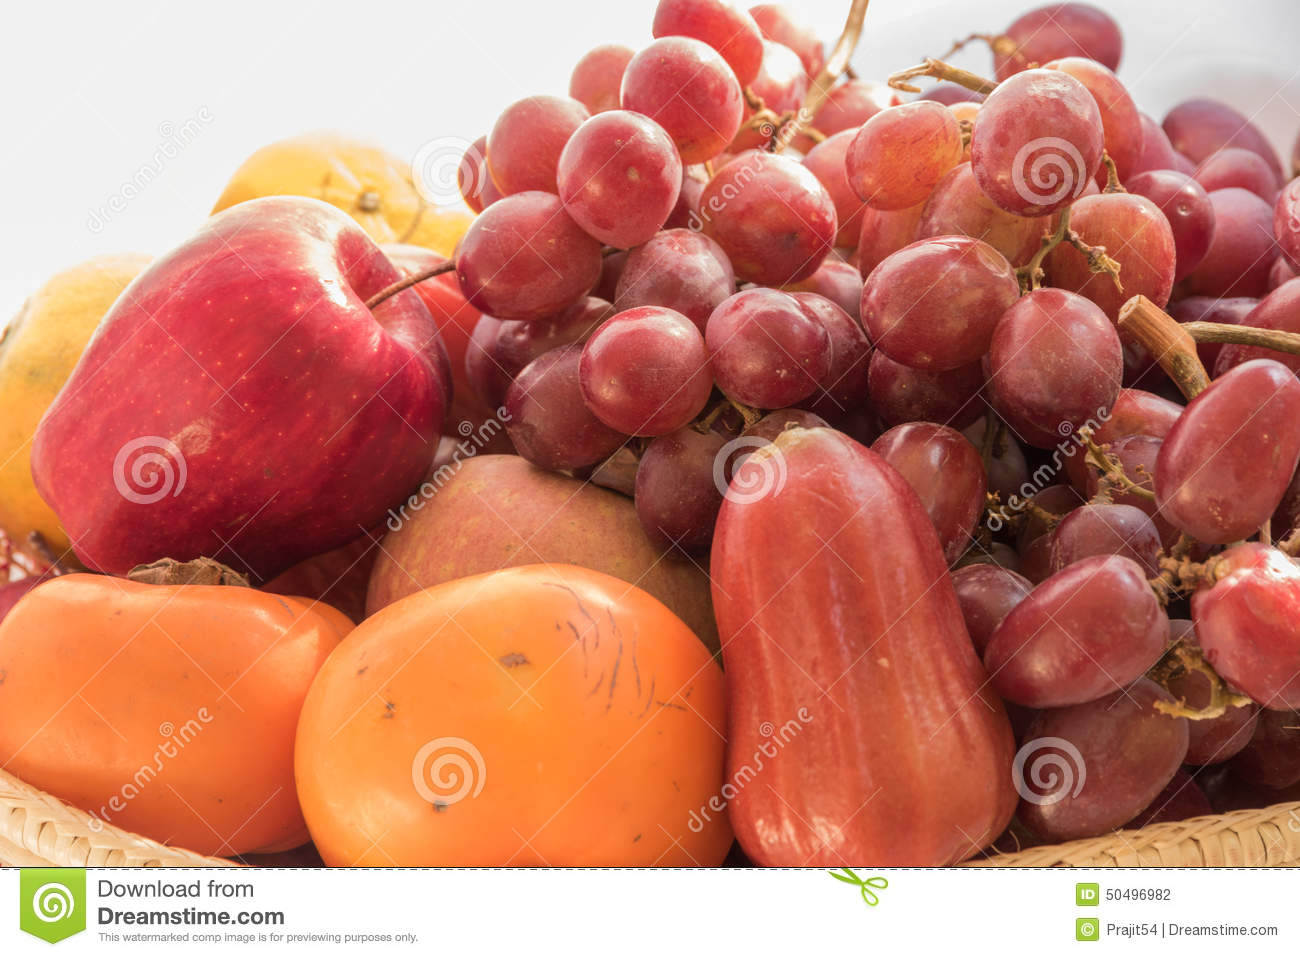 Fresh autumn fruits - rose apple, plums, grapes,orange and apples.